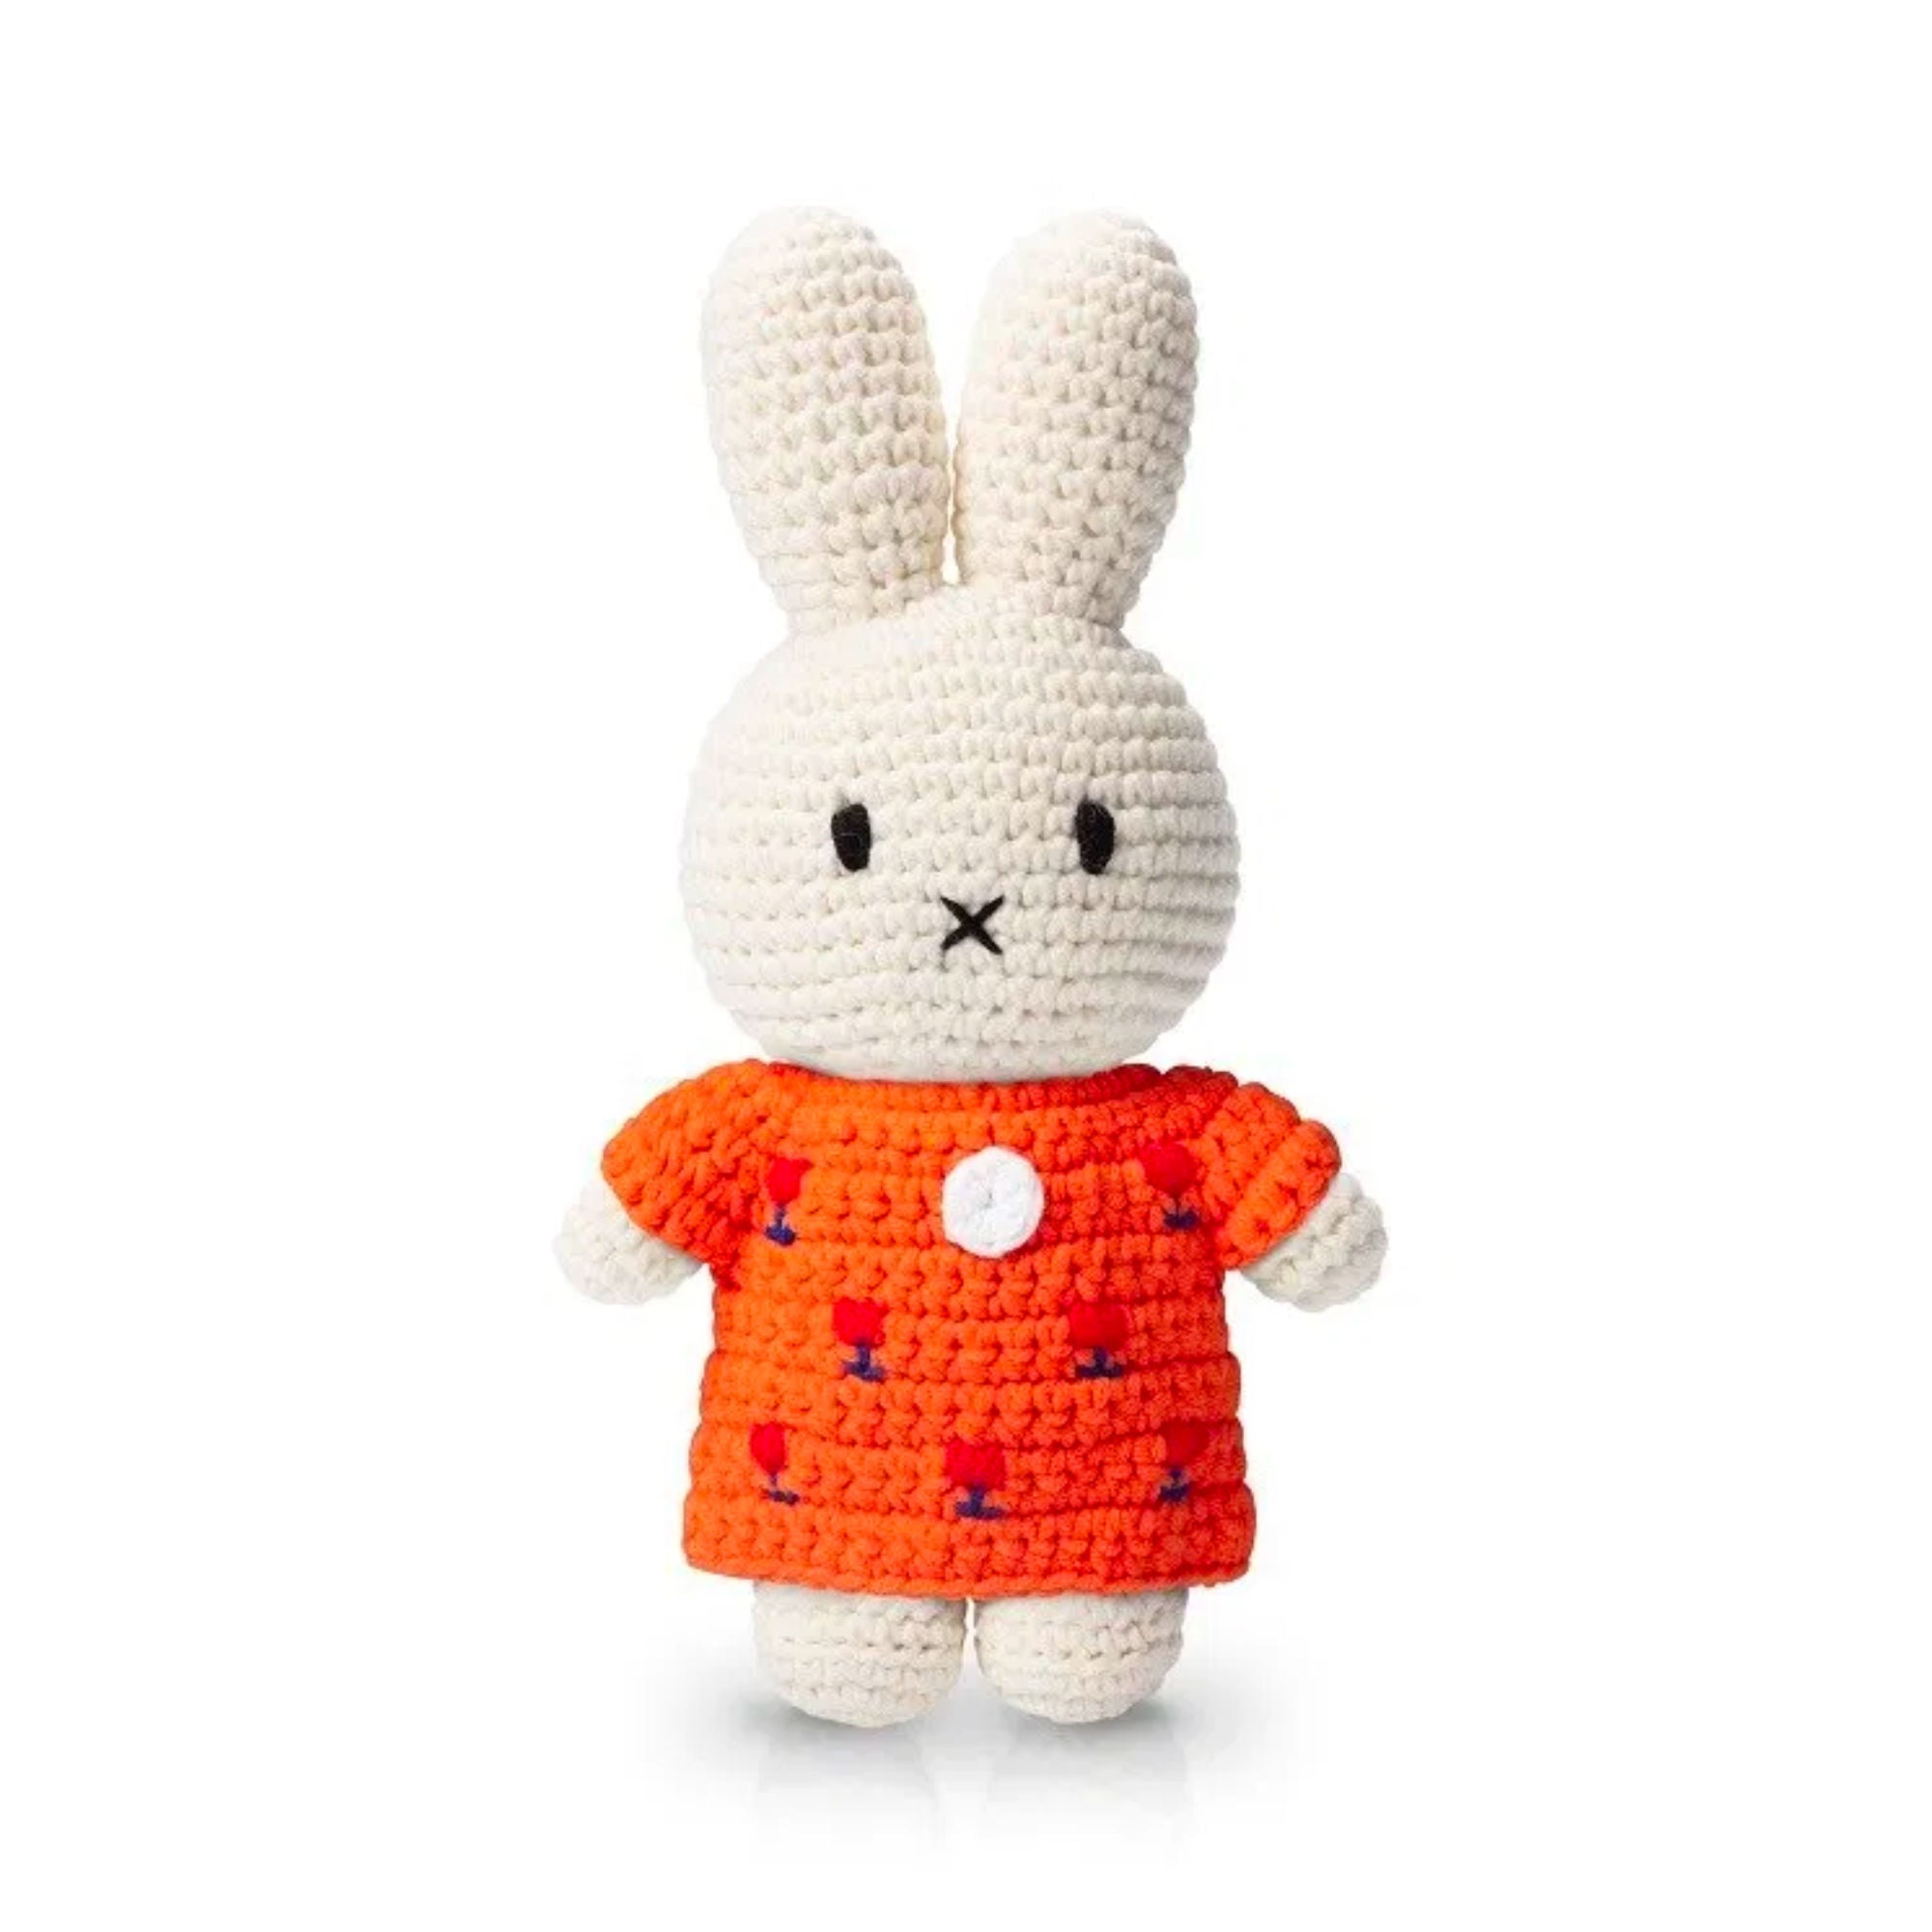 Just Dutch handmade doll, Miffy and her orange tulip dress